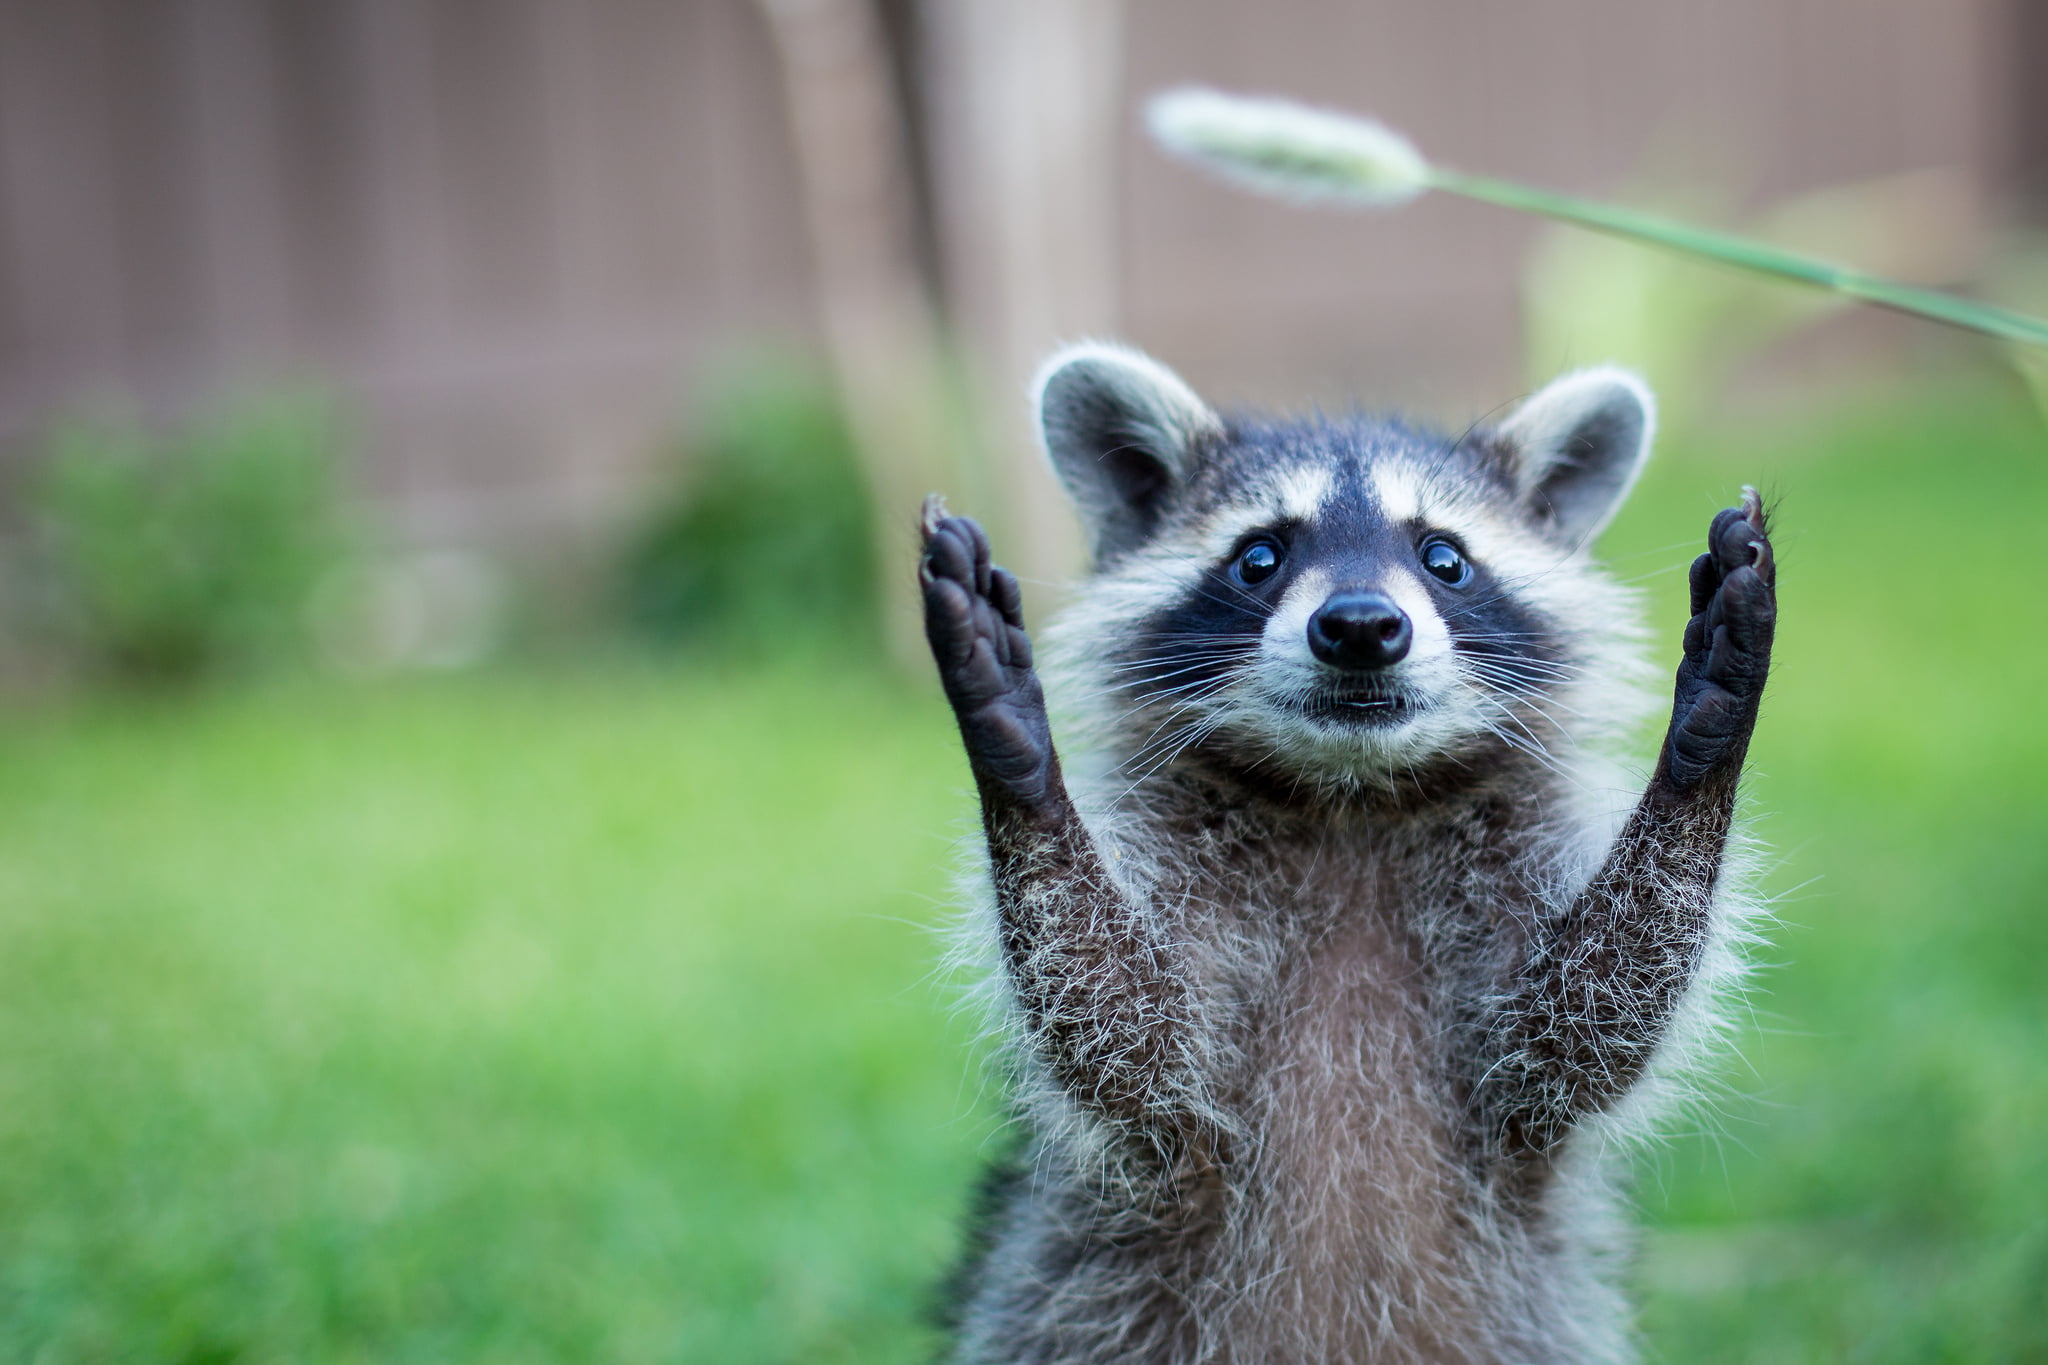 The Risks of Racoons in Your Home